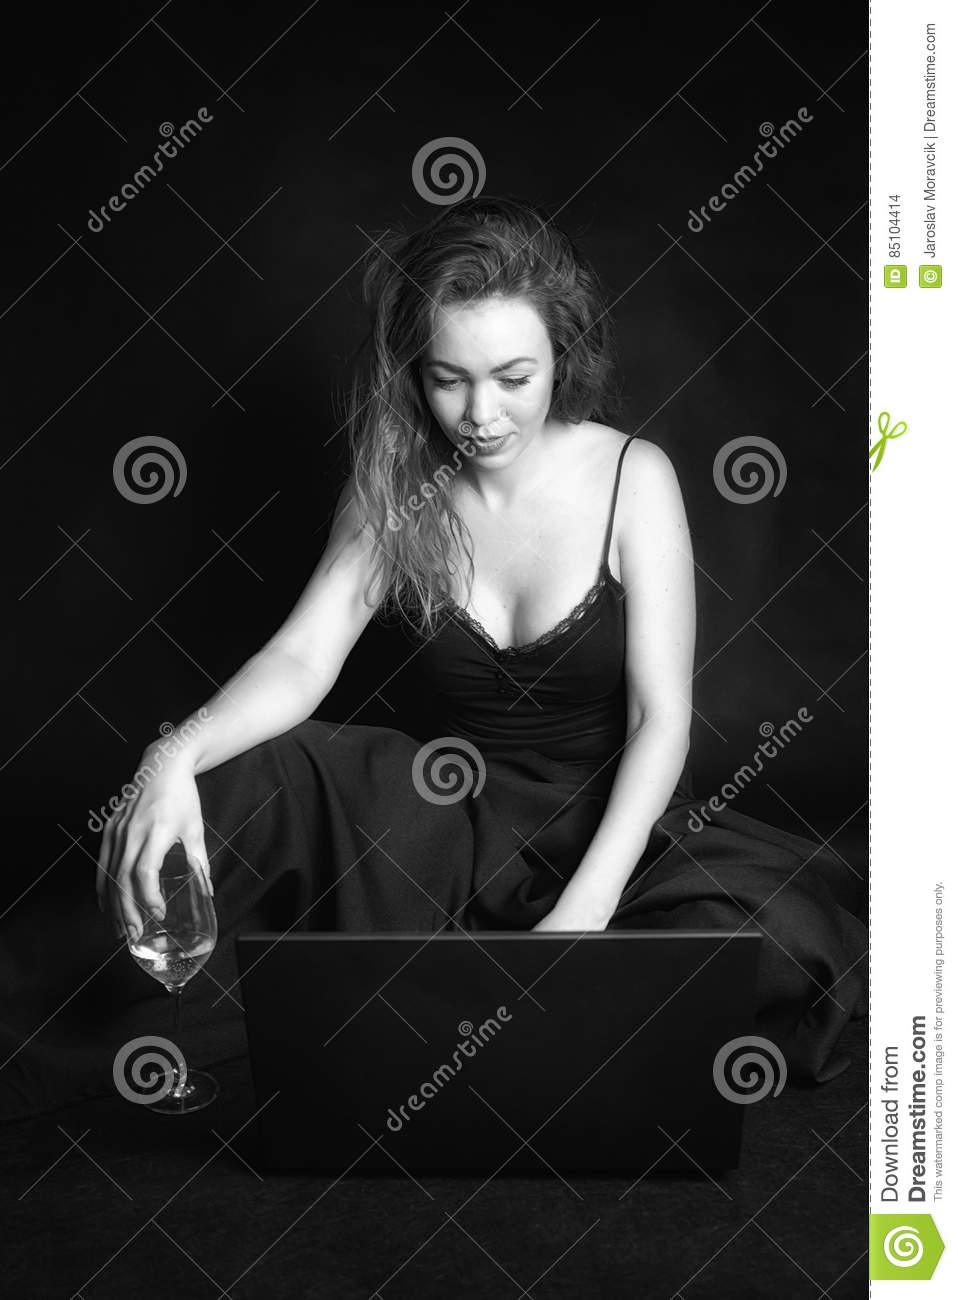 Redhead girl with laptop and glass of wine